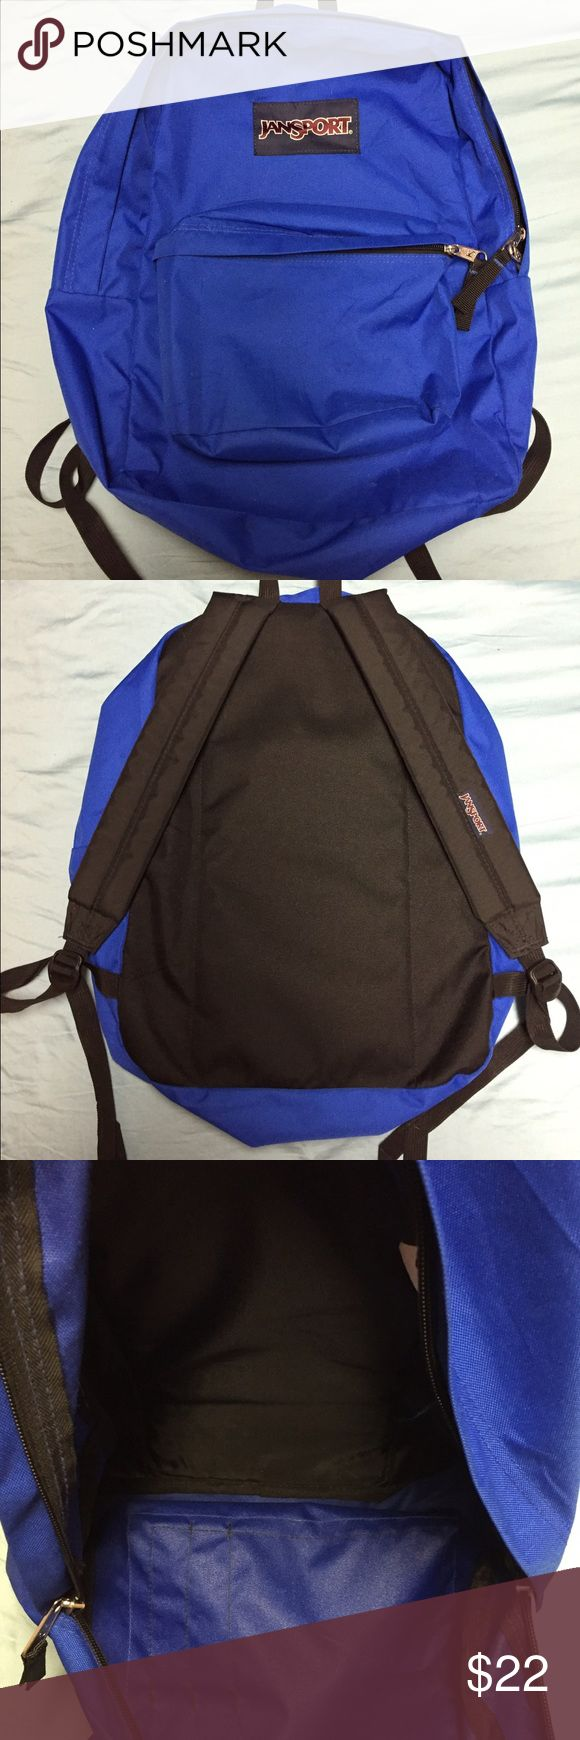 JanSport Superbreak royal blue backpack. NWOT!!! JanSport Superbreak royal blue backpack. Never used, brand new! NWOT!!! Normal/original Jansport backpack. Offers welcome :) Jansport Bags Backpacks